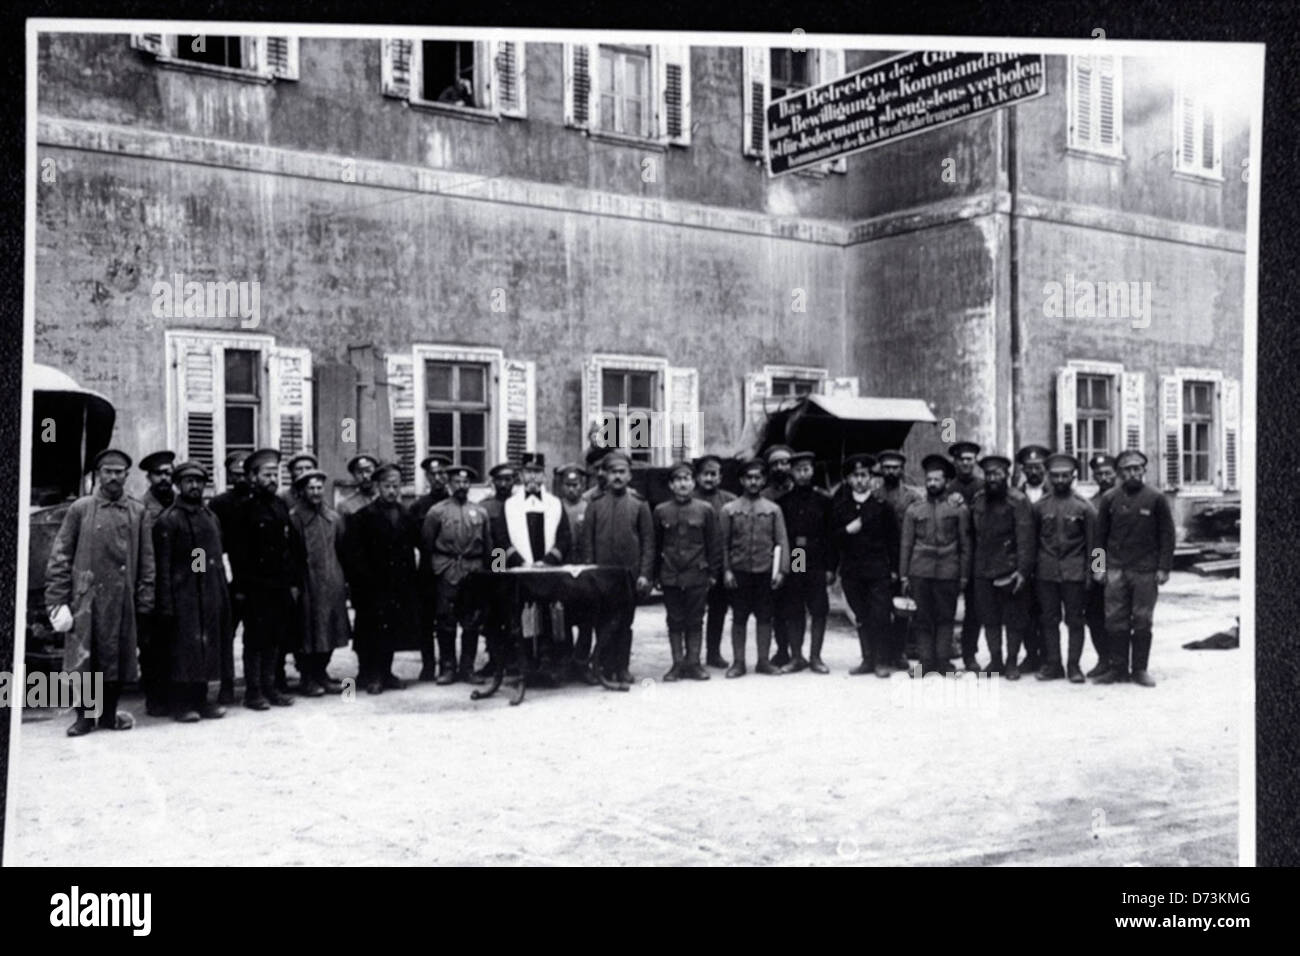 Jewish Chaplain of the Austro-Hungarian Army Conducts Services for Jewish Russian Prisoners - Stock Image